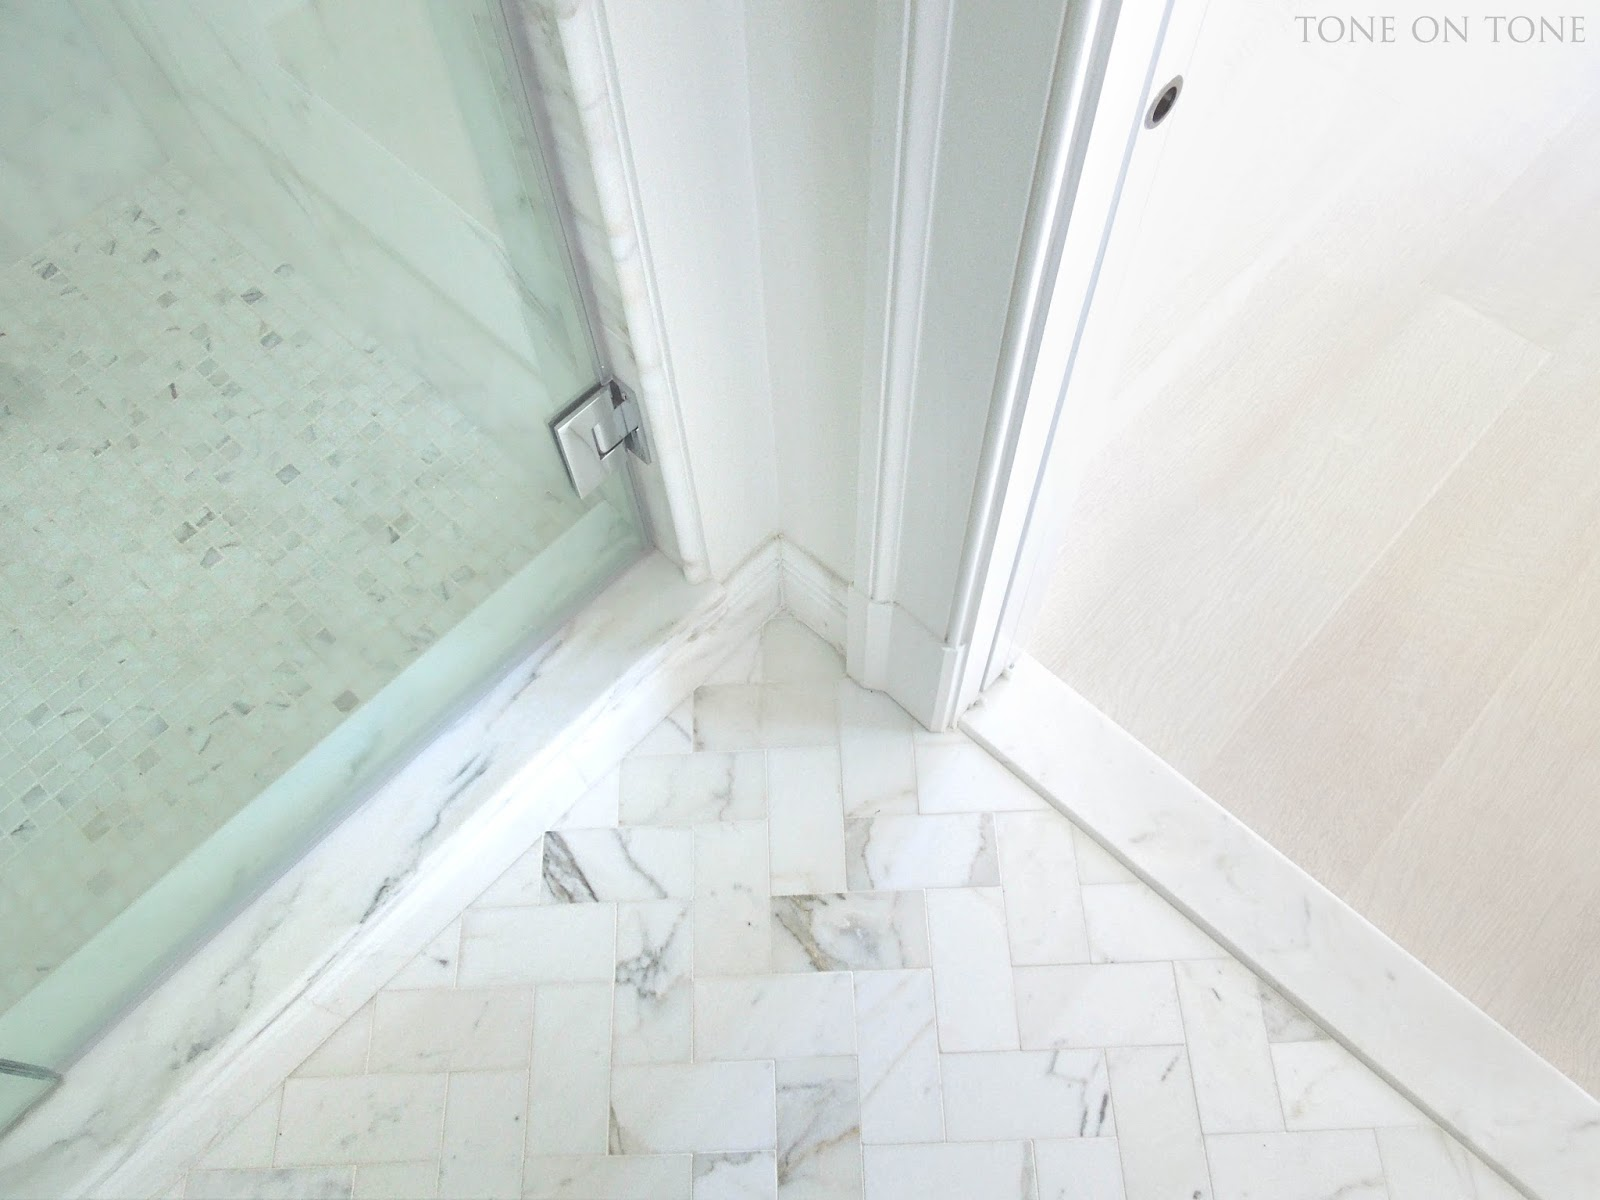 Tone on Tone: Small Bathroom Renovation